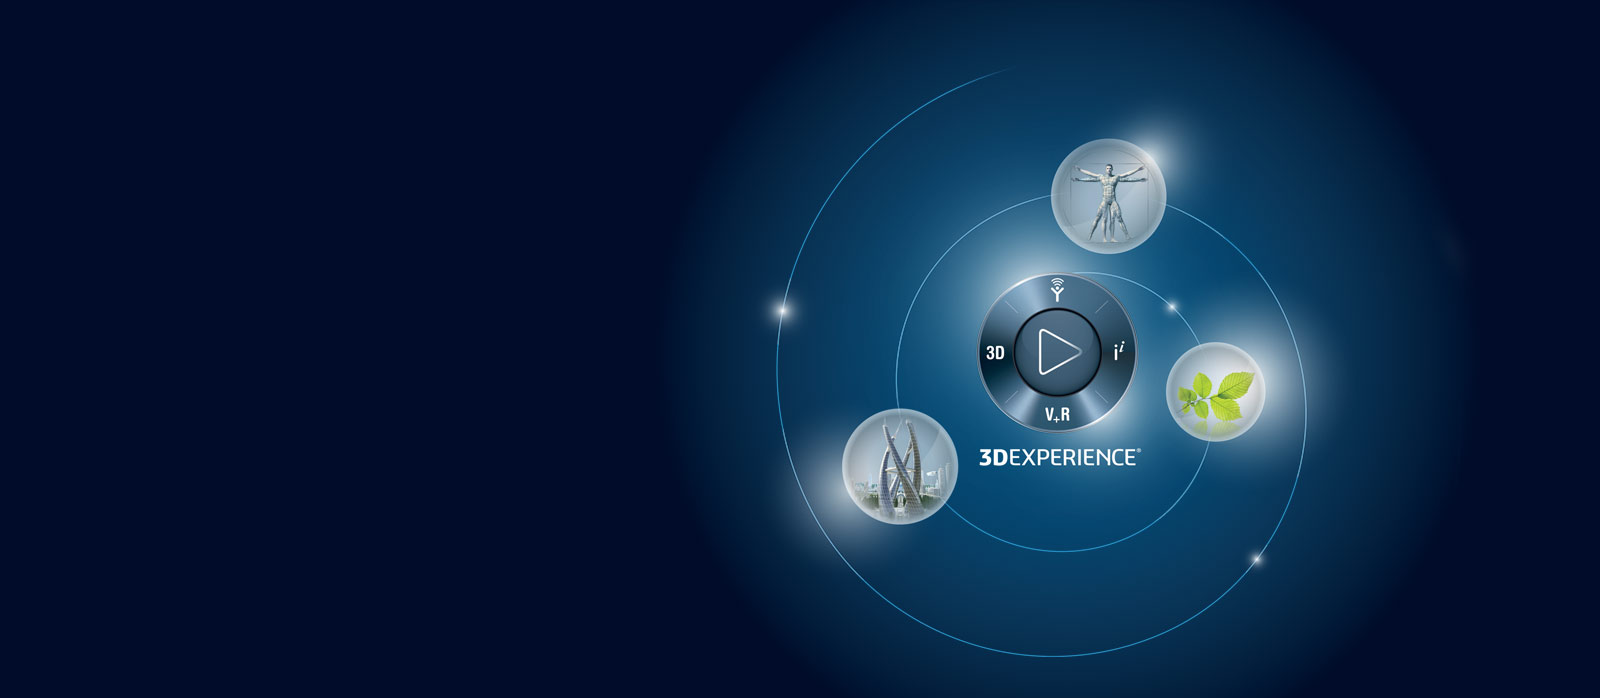 3DEXPERIENCE Release 2019x Now Available Bringing an unparalleled combination of advanced technologies and industry experiences